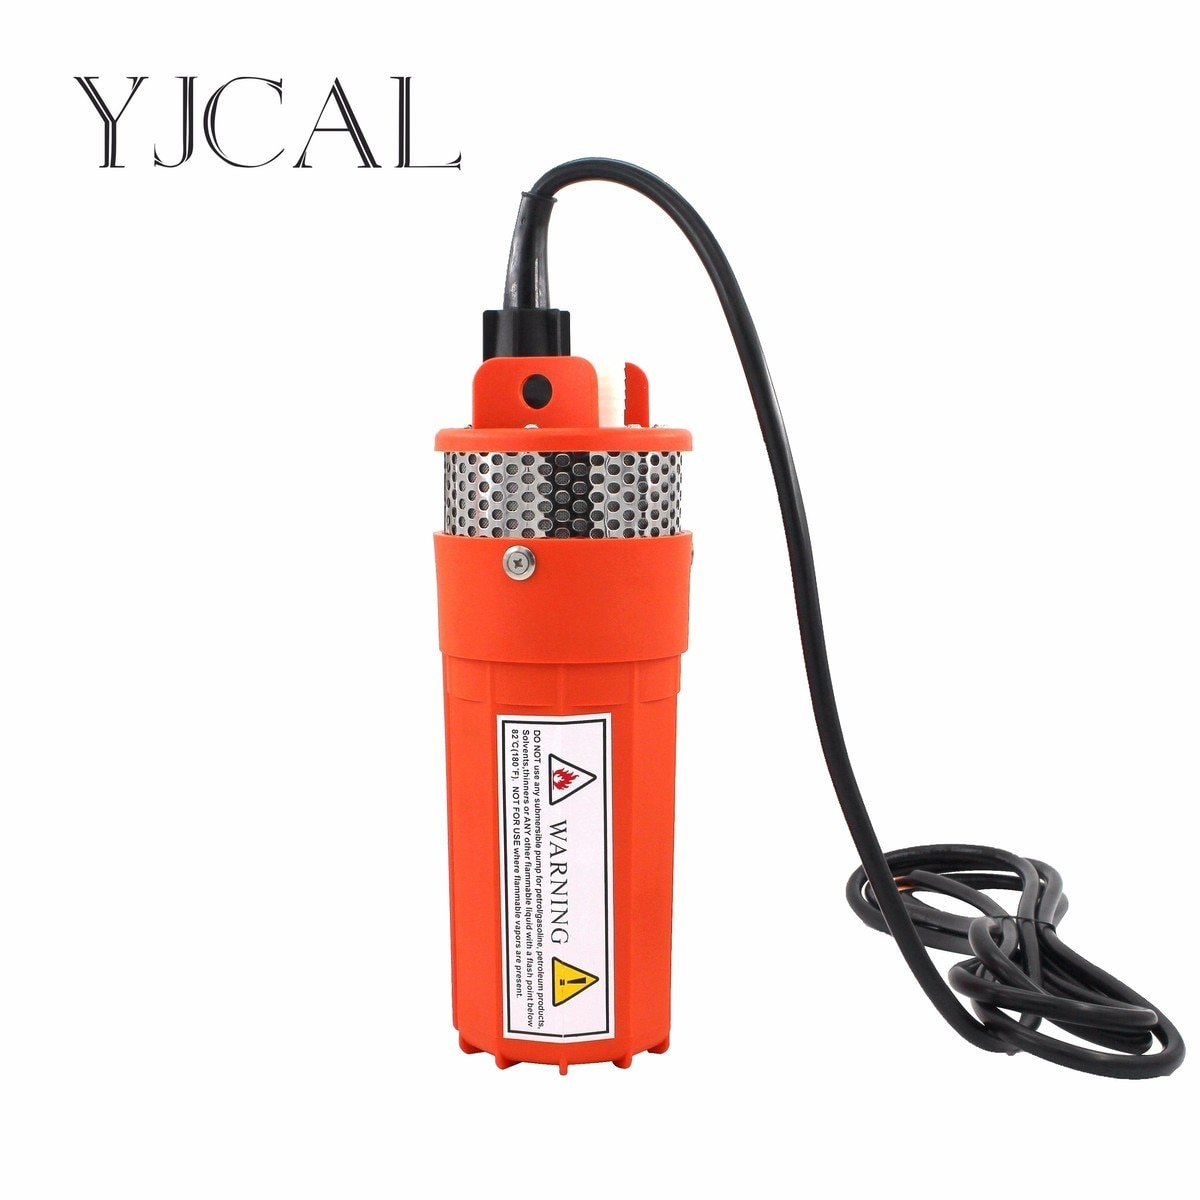 dc 12v 24v mini solar power high pressure water pump 70 meter lift diaphragm submersible outdoor garden fountain deep well DC12/24V Submersible Solar Water Pump 70M Lift Small Power  For Outdoor Garden Fountain Deep Well Aquarium Aquario